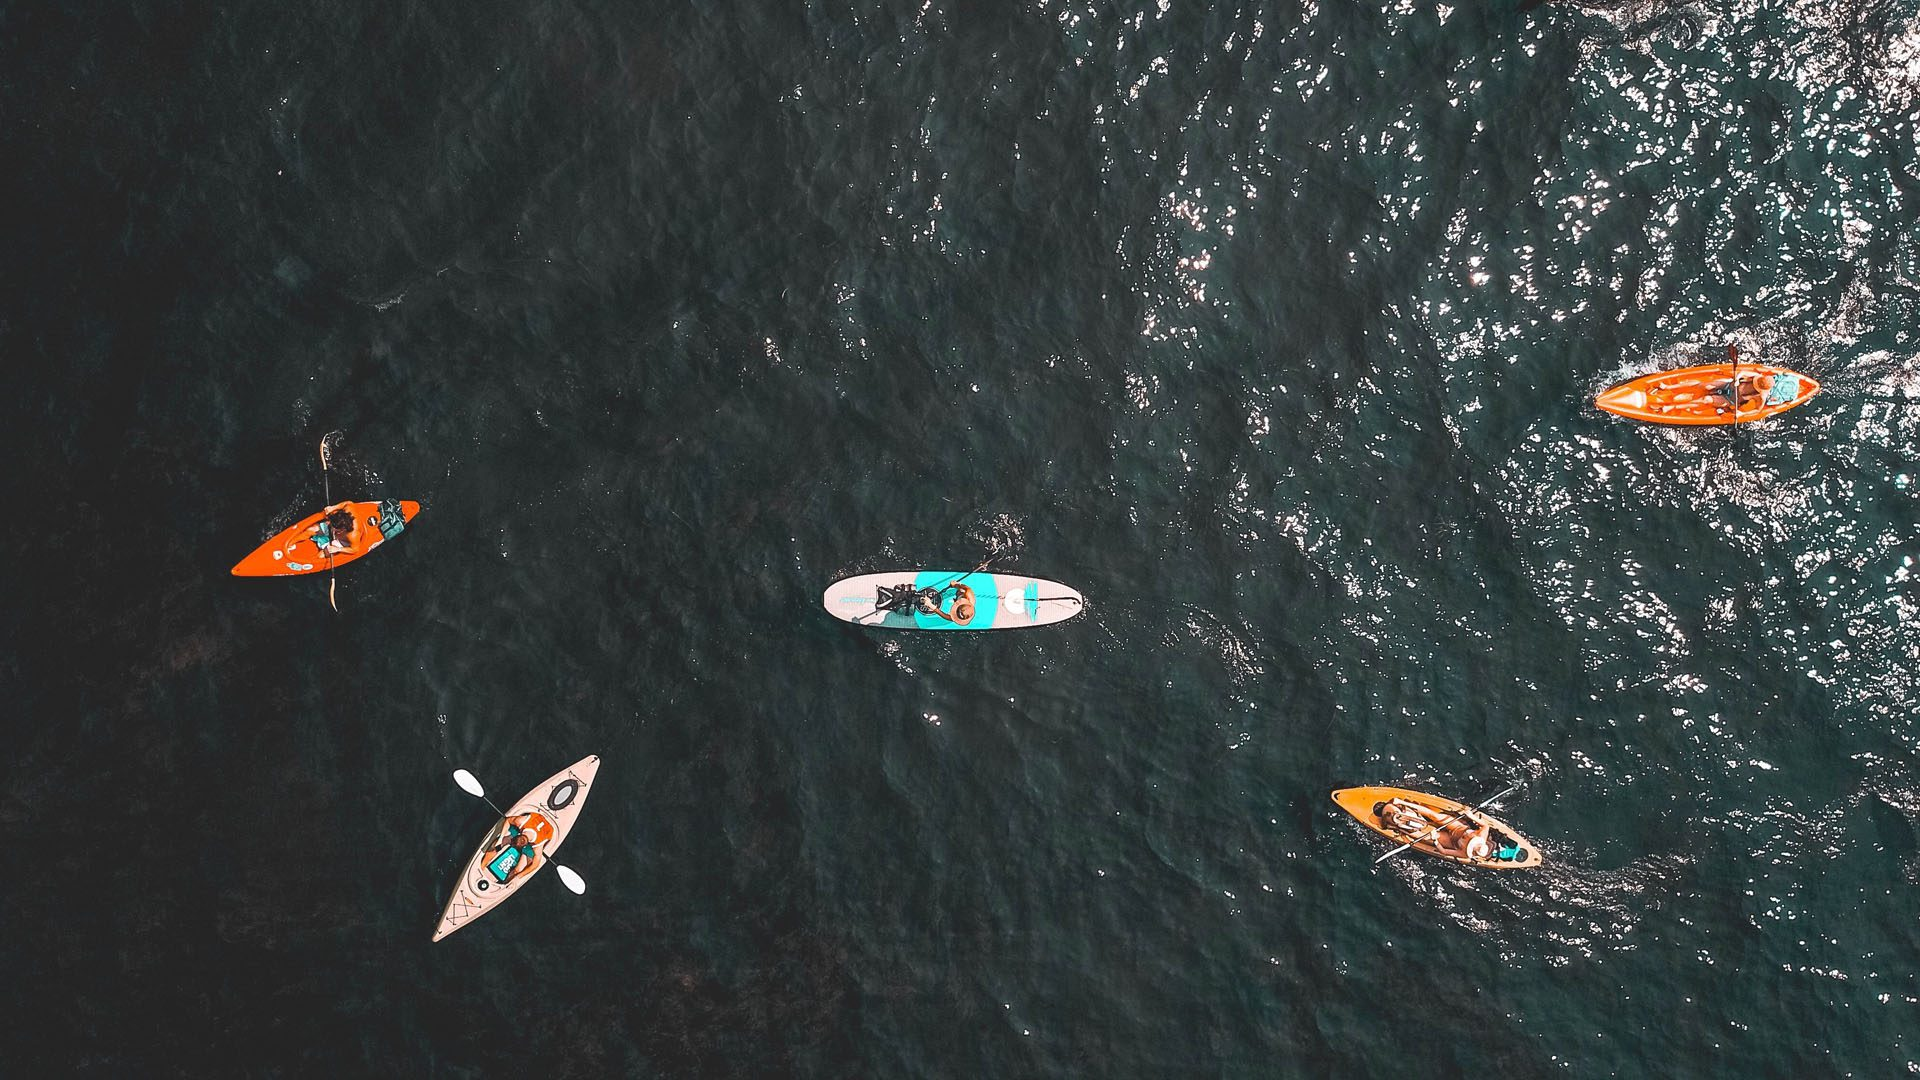 Aerial photo of kayaks